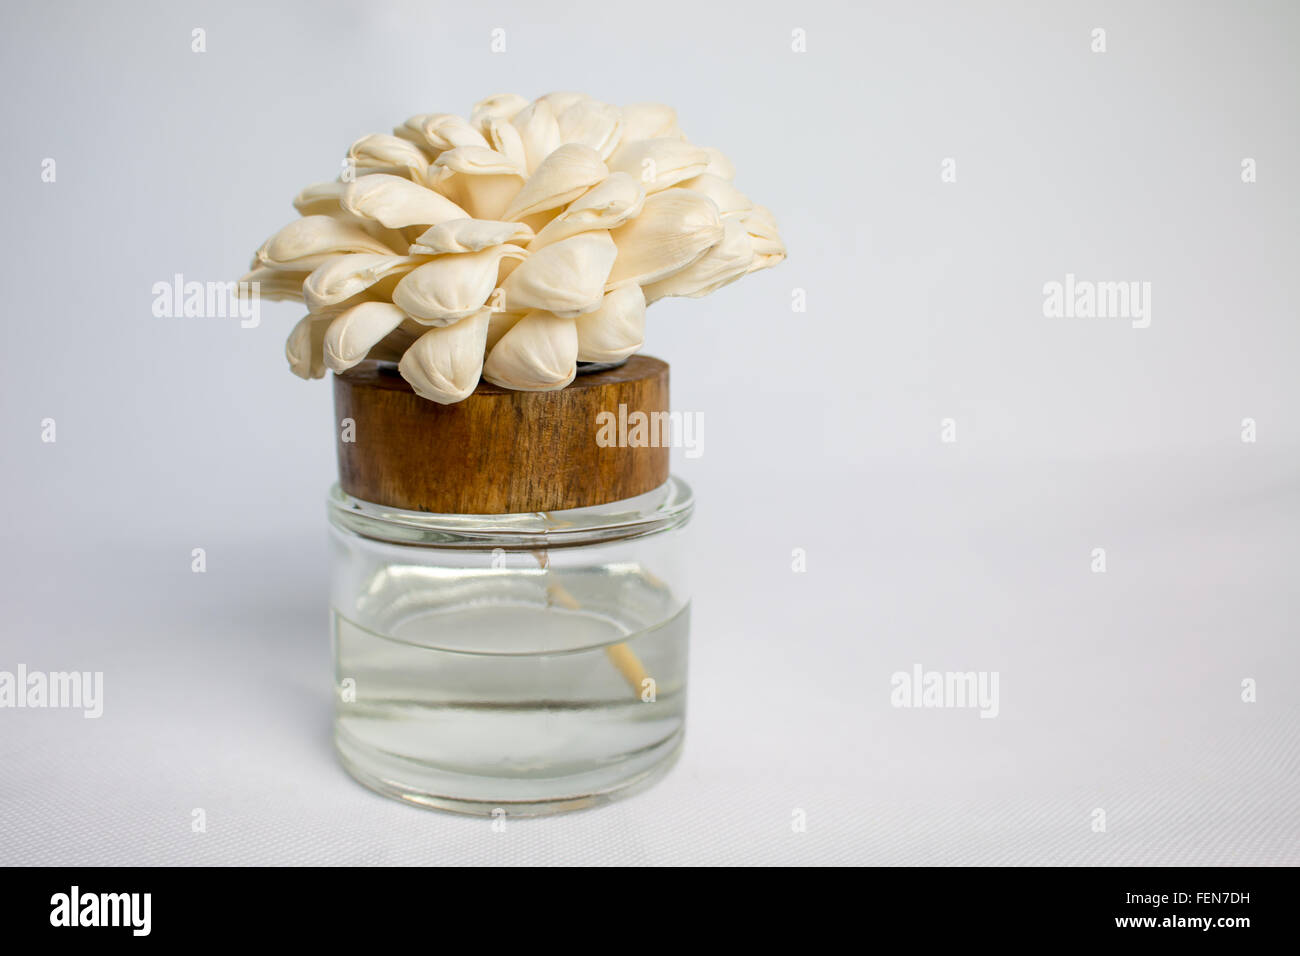 Small bottle of perfume with white flowers stock photo 95123885 alamy small bottle of perfume with white flowers mightylinksfo